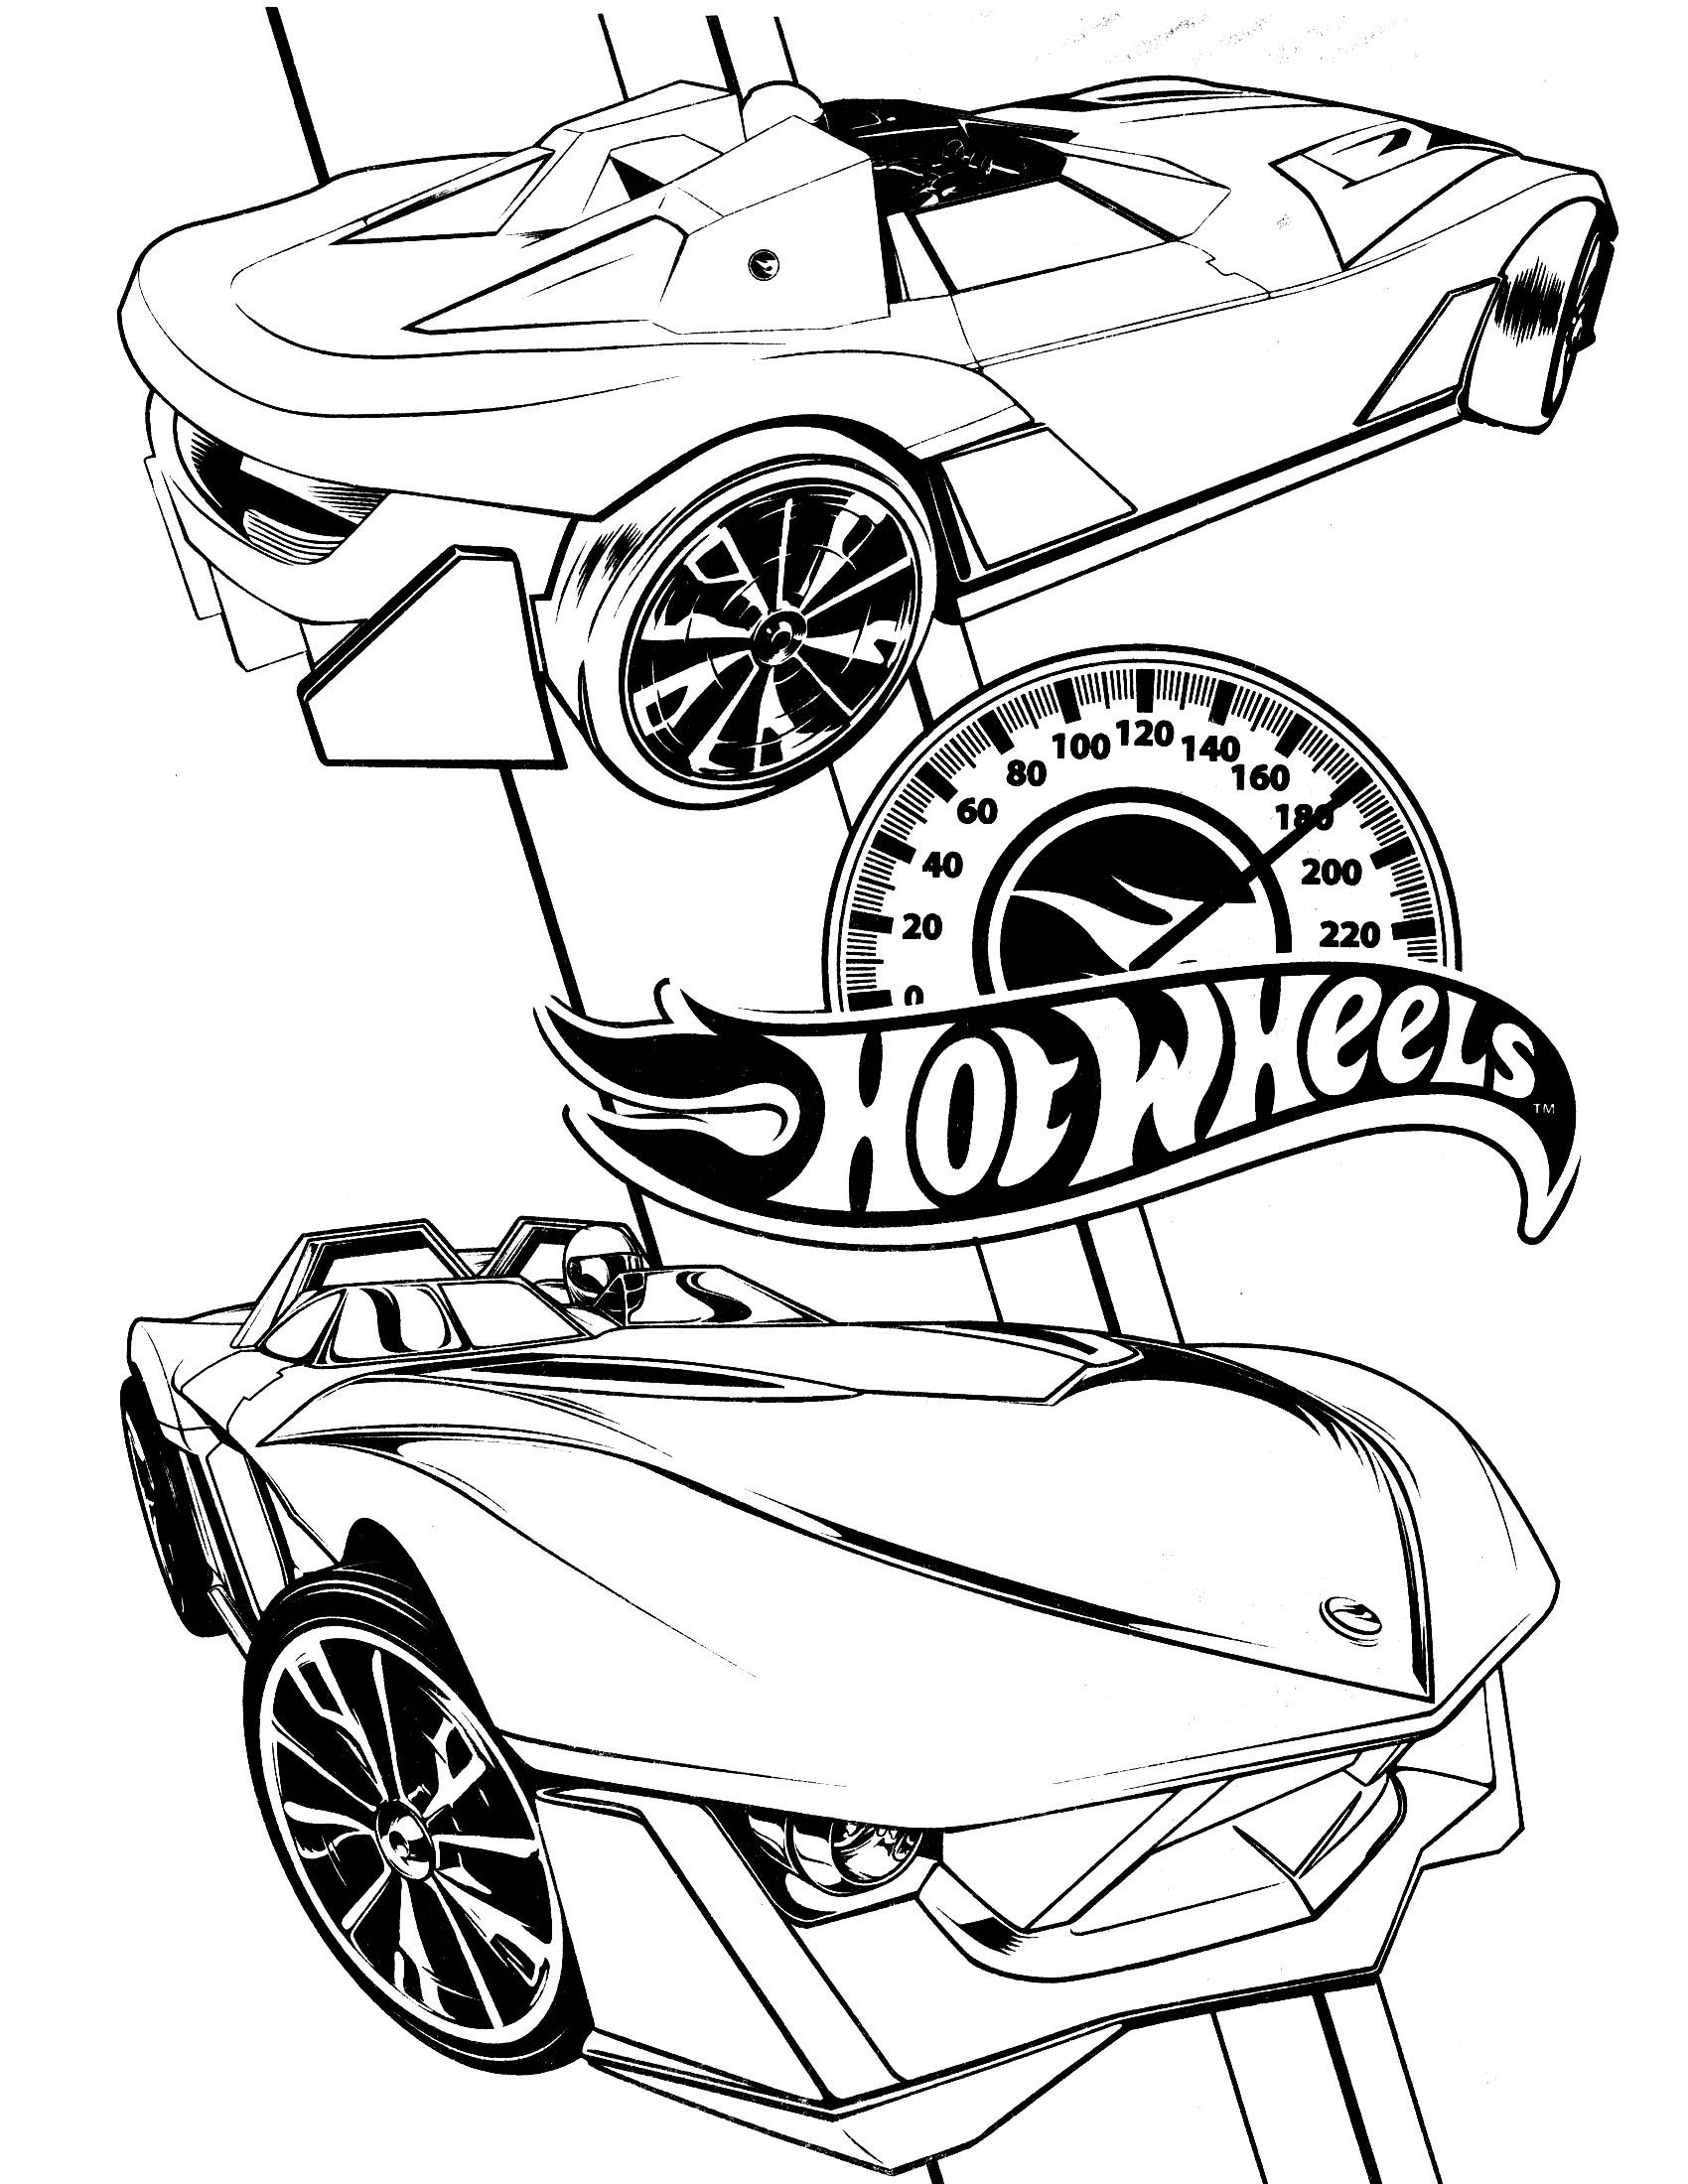 hot wheels coloring page | раскраски | Pinterest